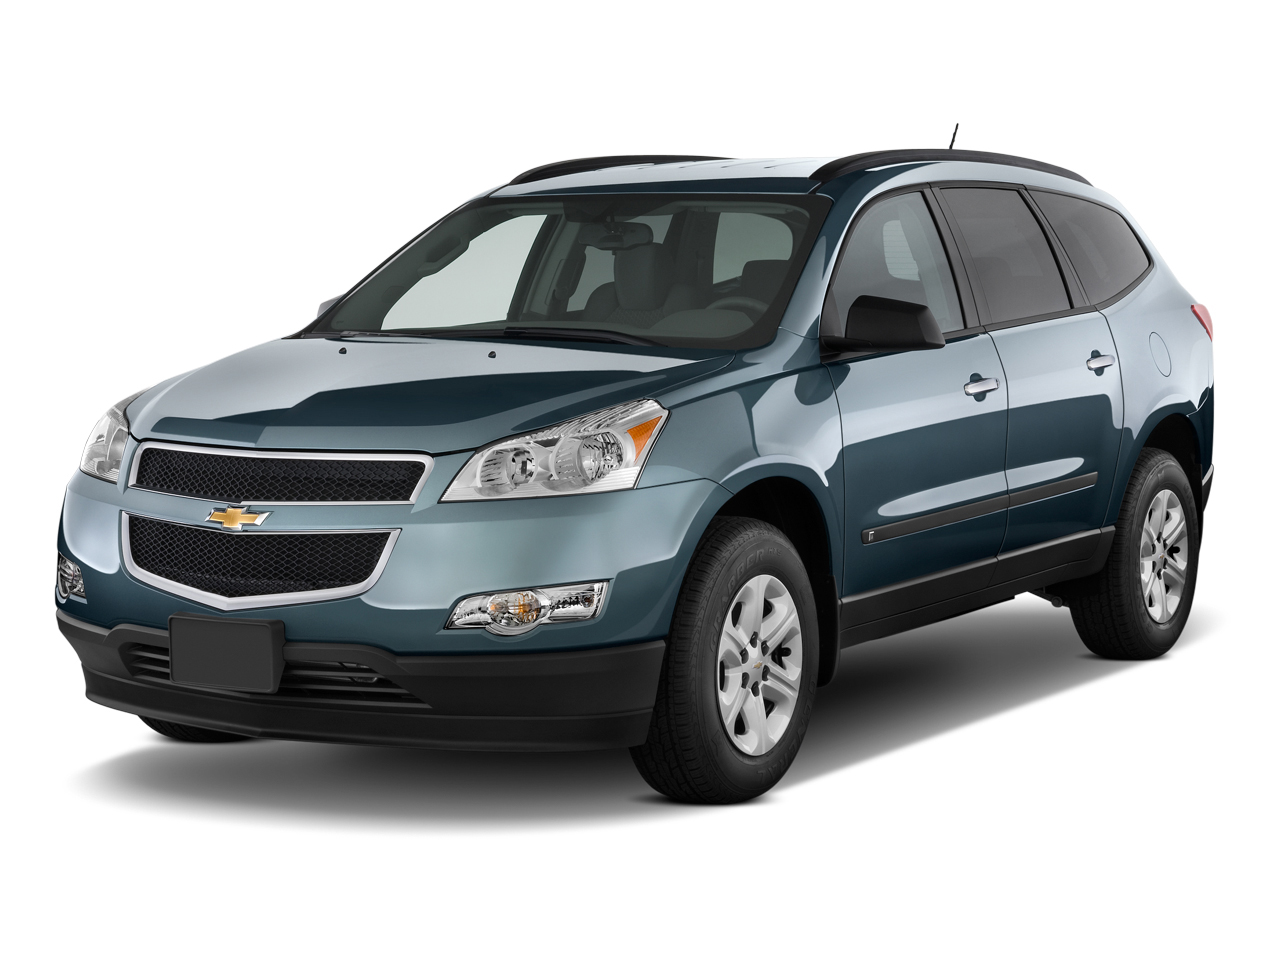 2011 Chevrolet Traverse Chevy Review Ratings Specs Prices And Photos The Car Connection